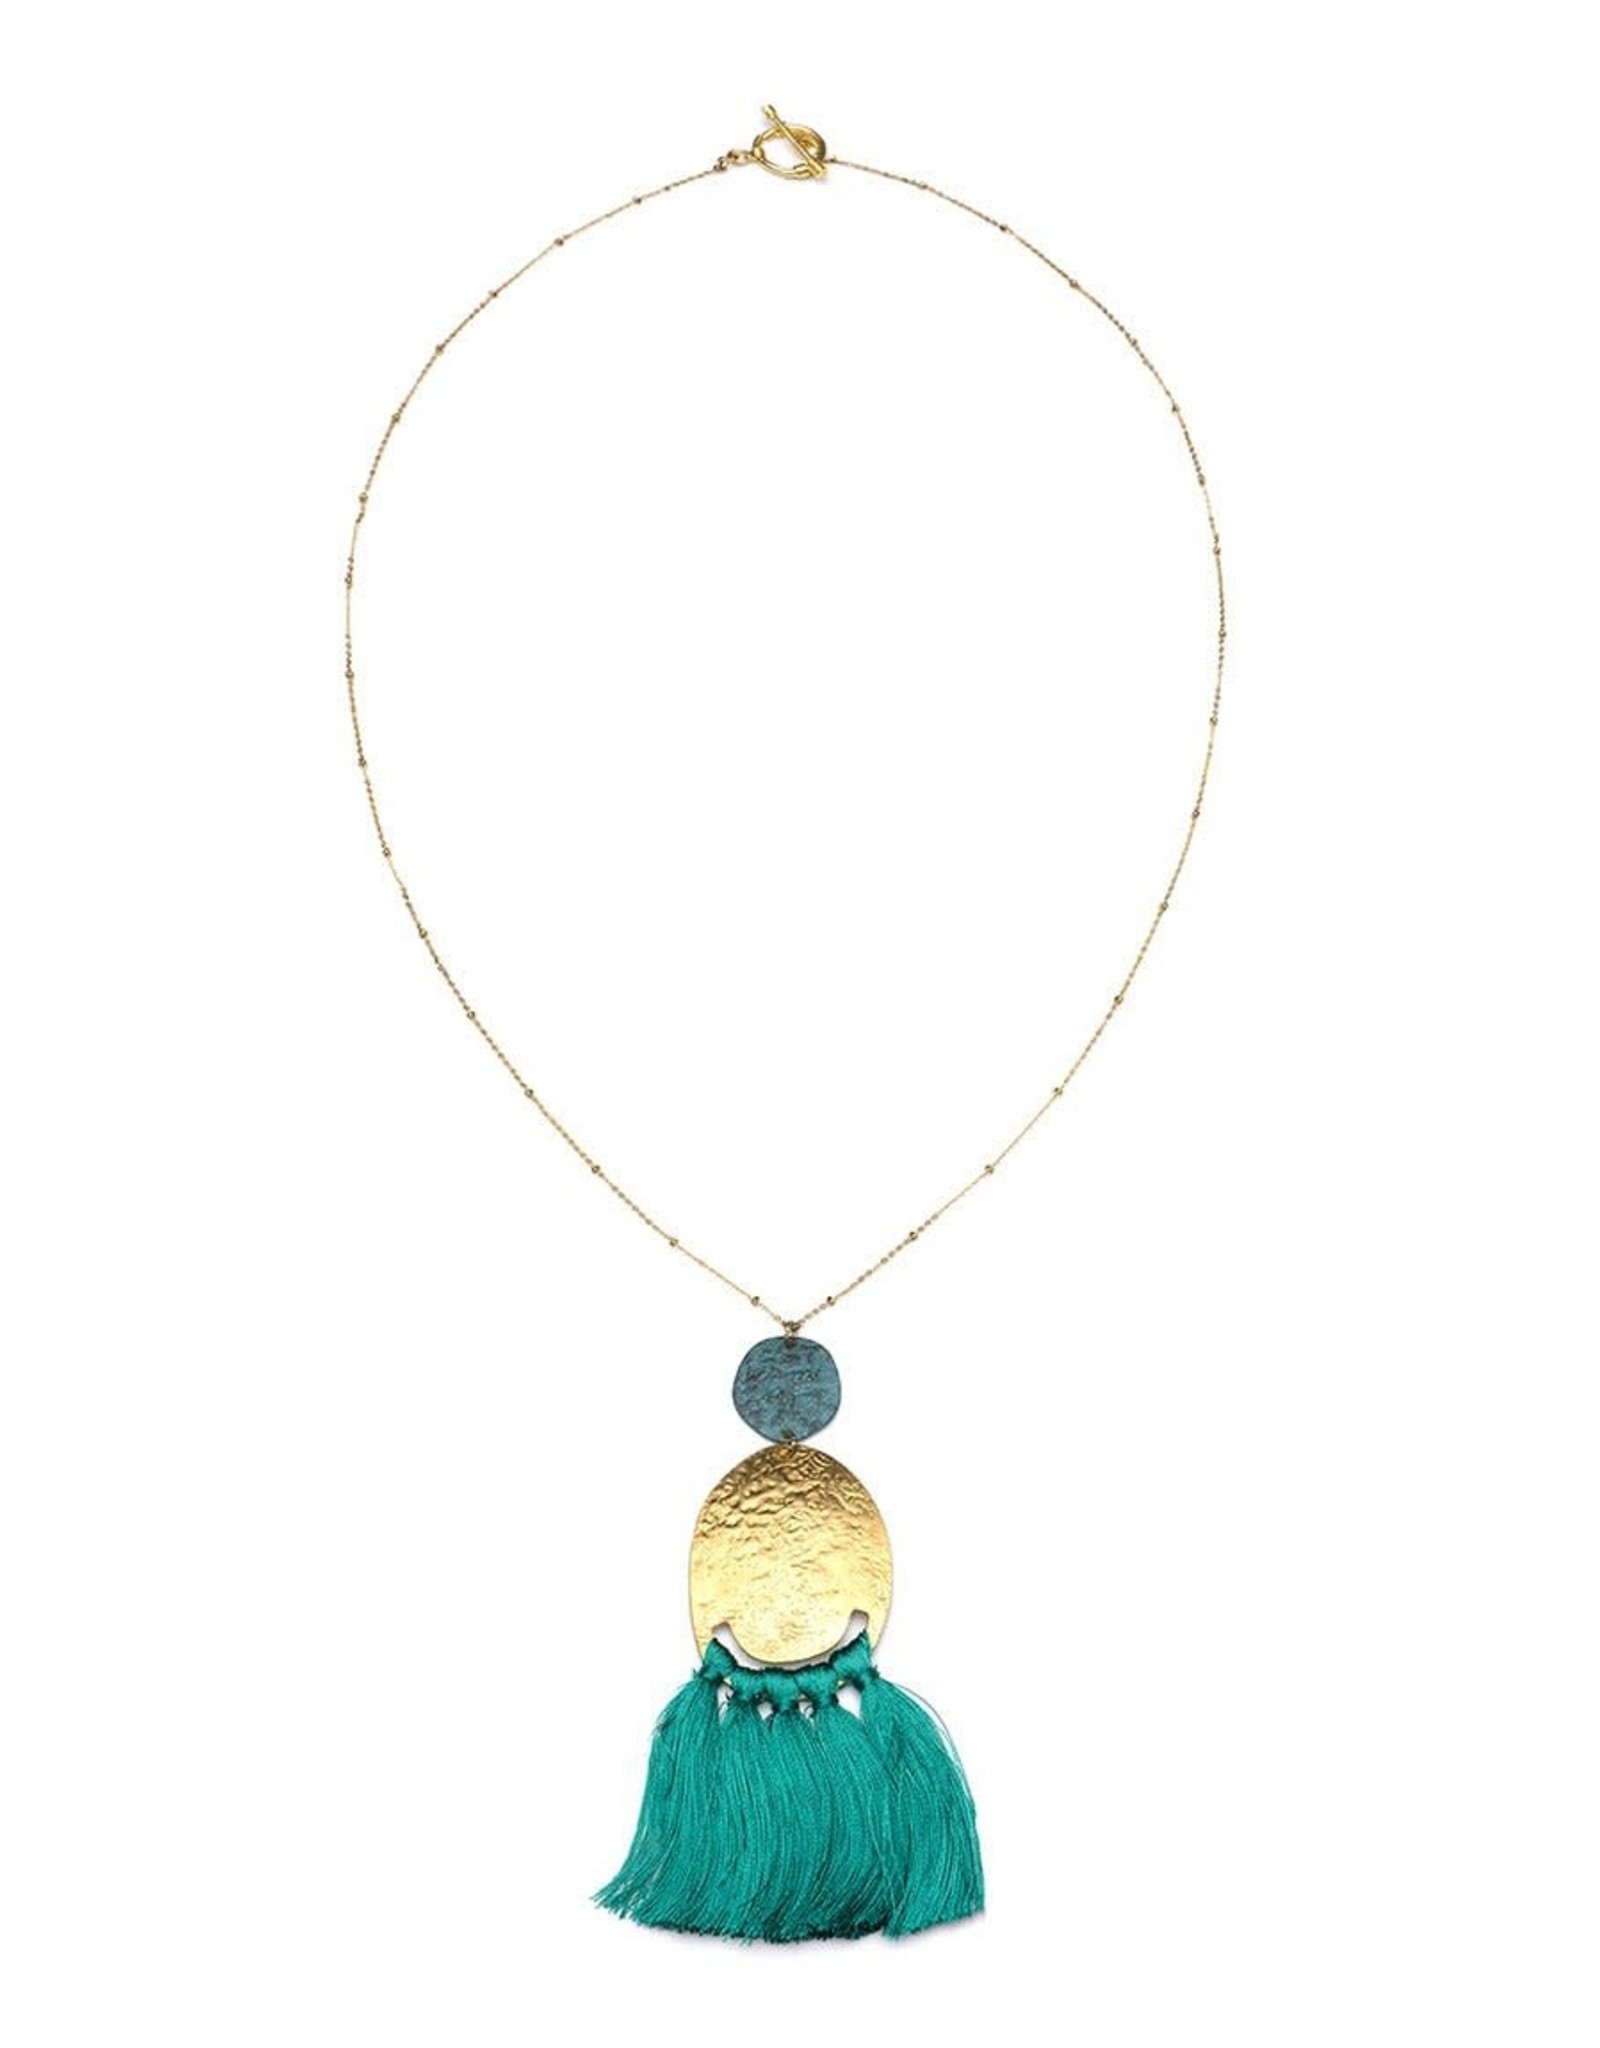 Matr Boomie Nihira tassel necklace teal